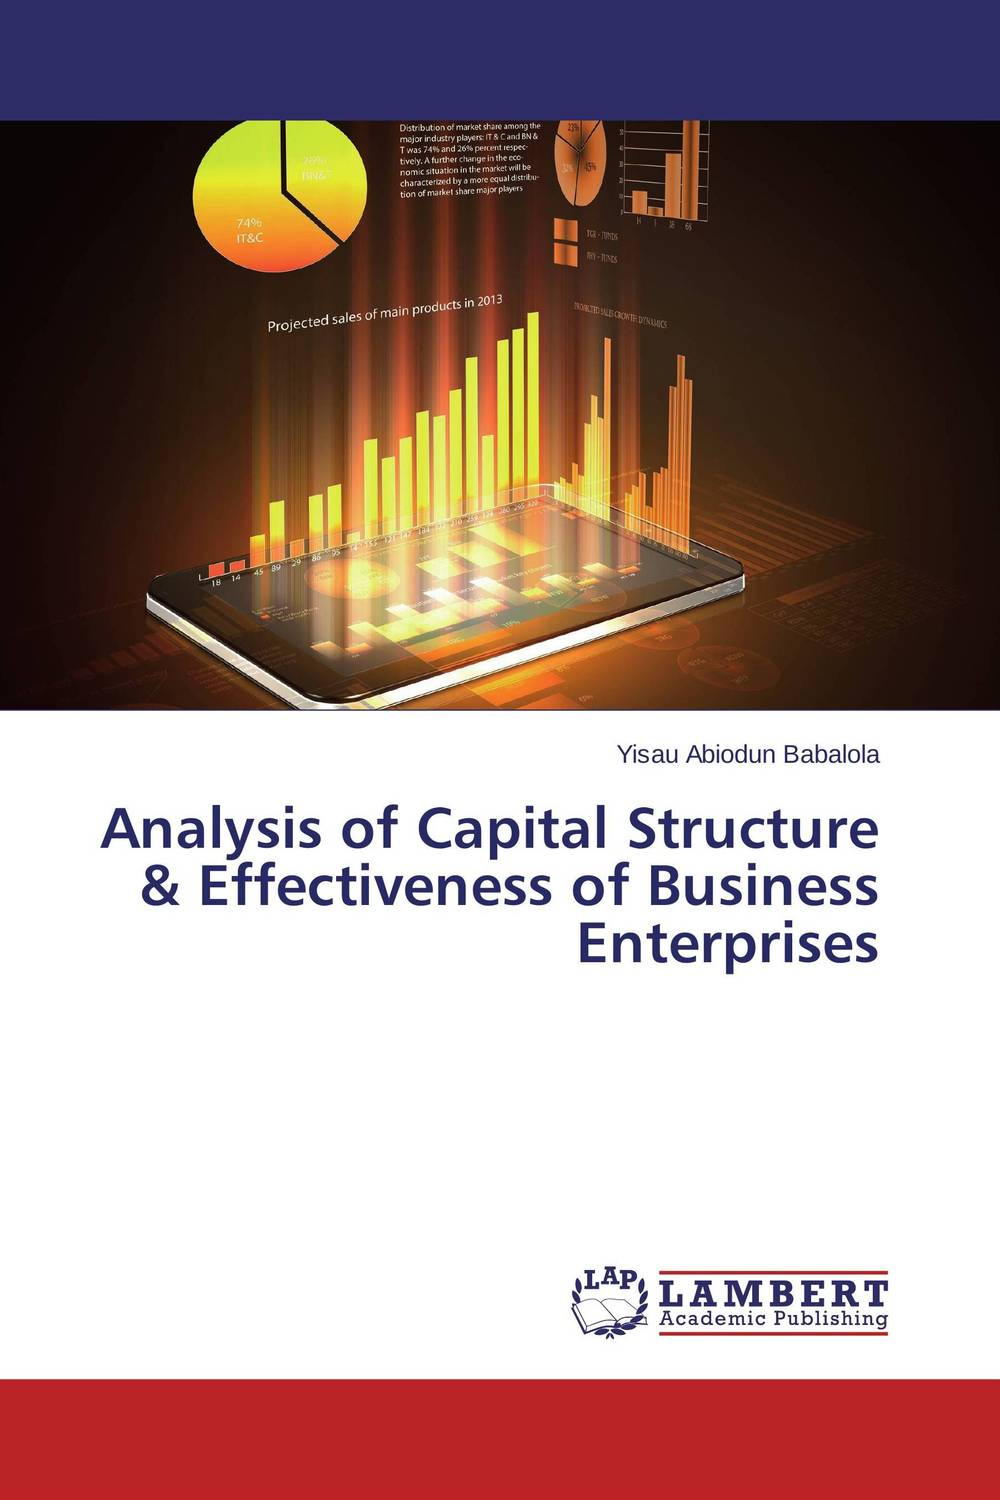 Analysis of Capital Structure & Effectiveness of Business Enterprises i manev social capital and strategy effectiveness an empirical study of entrepreneurial ventures in a transition economy